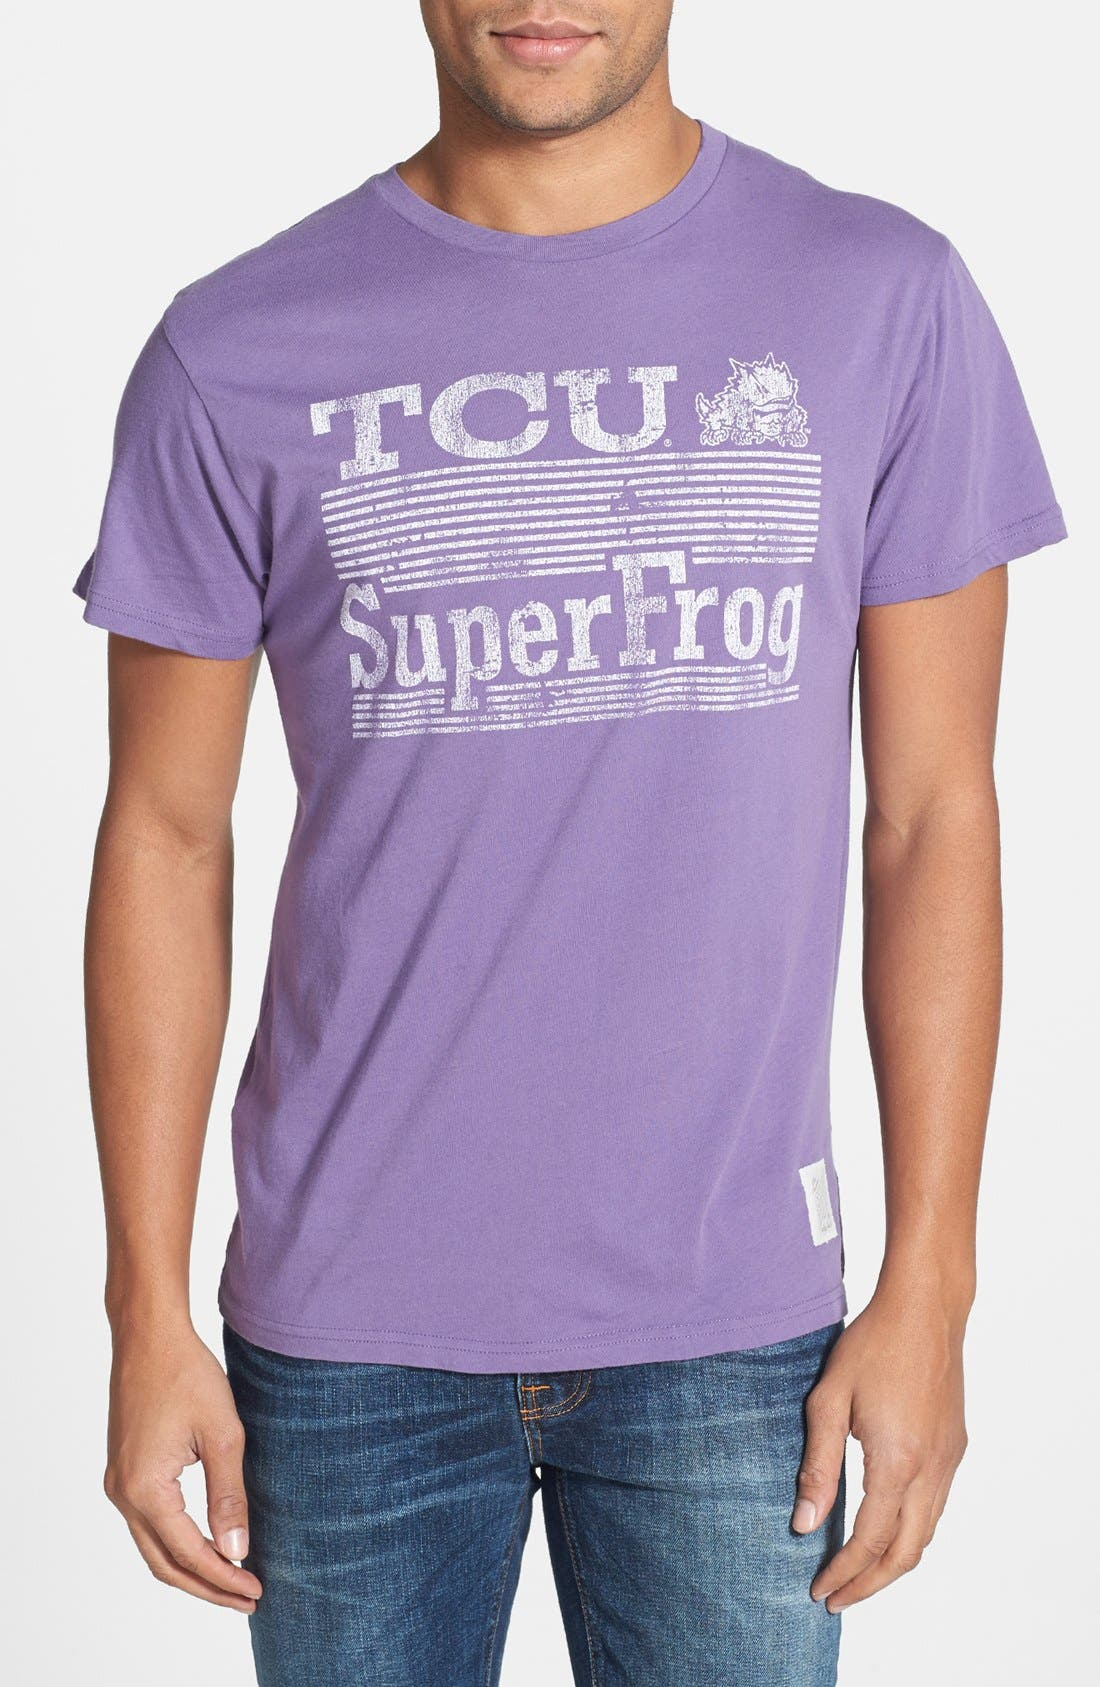 Alternate Image 1 Selected - Retro Brand 'TCU Horned Frogs' Team T-Shirt